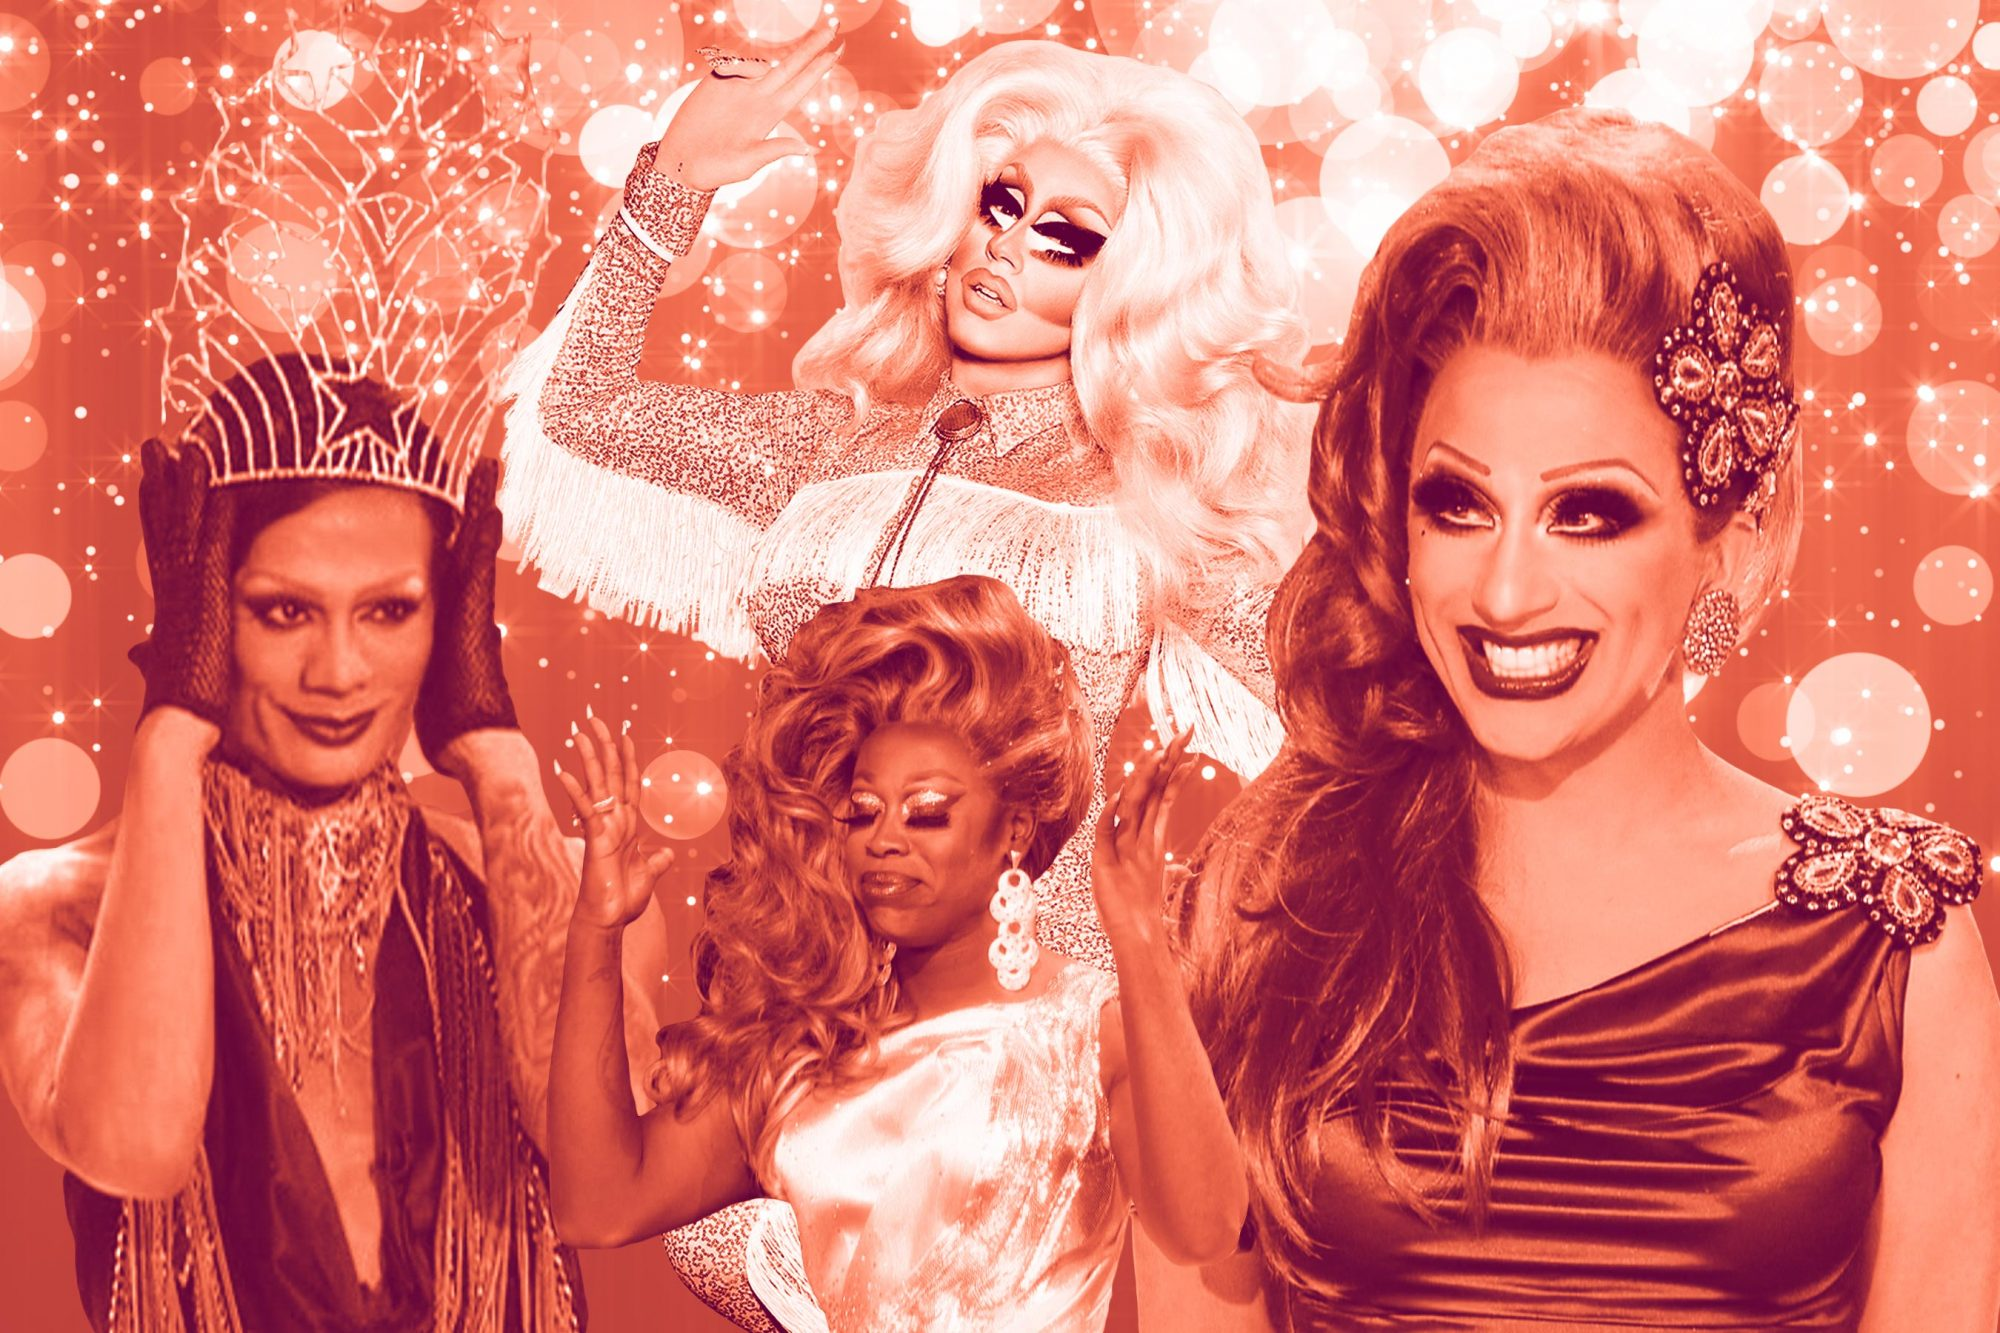 Every winner of RuPaul's Drag Race, ranked